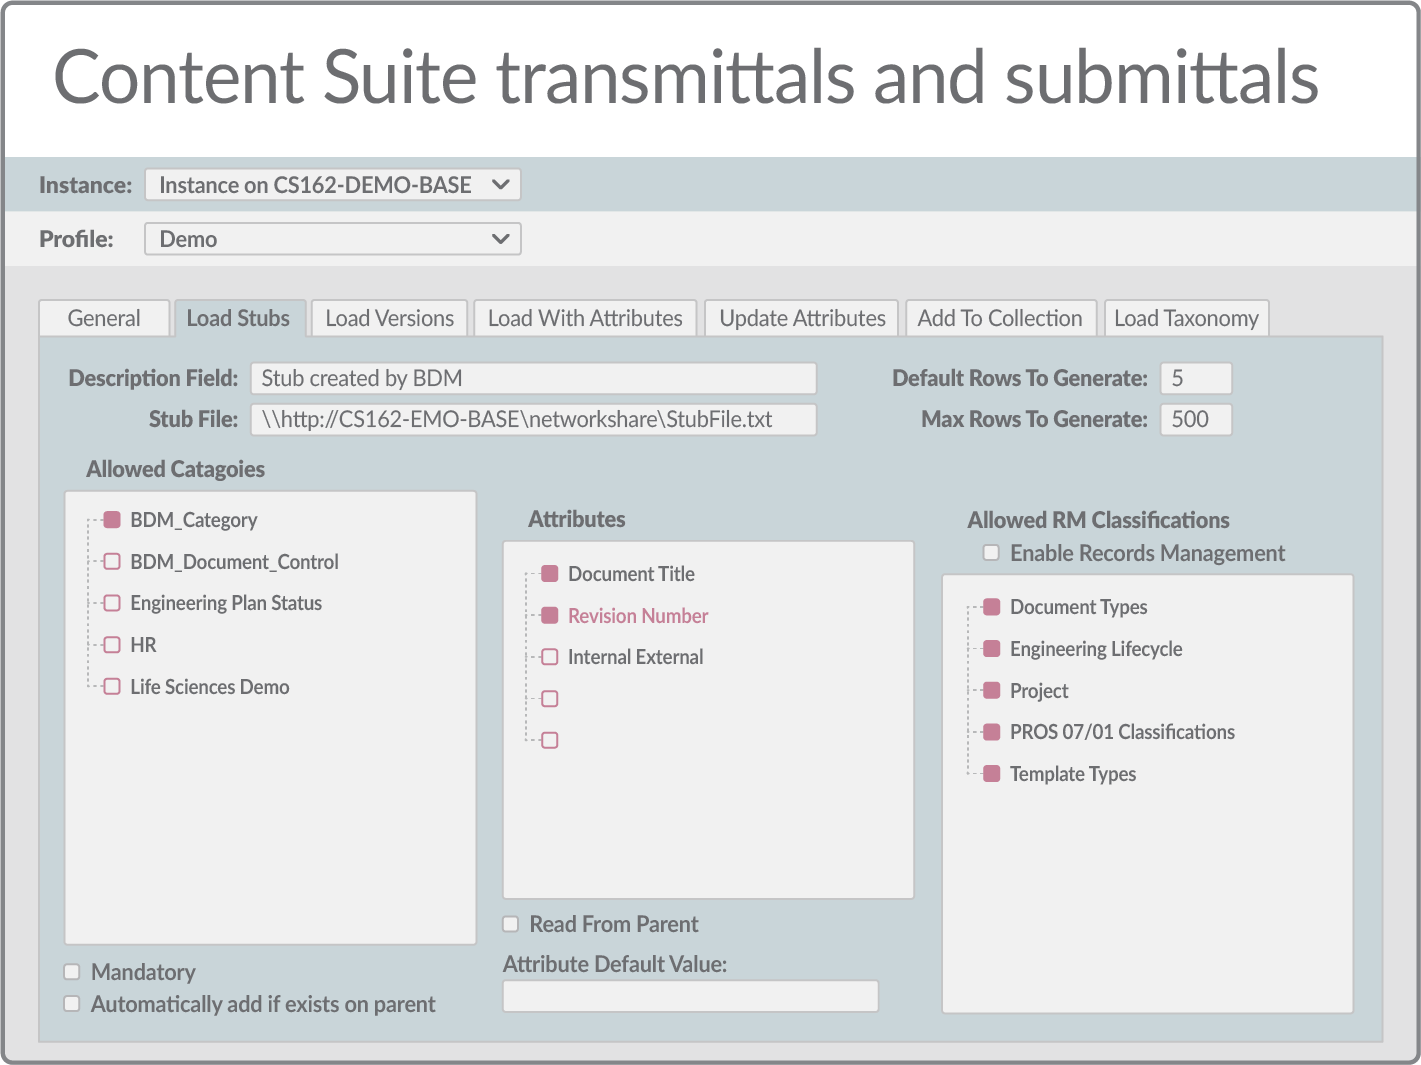 Content Suite transmittals and submittals